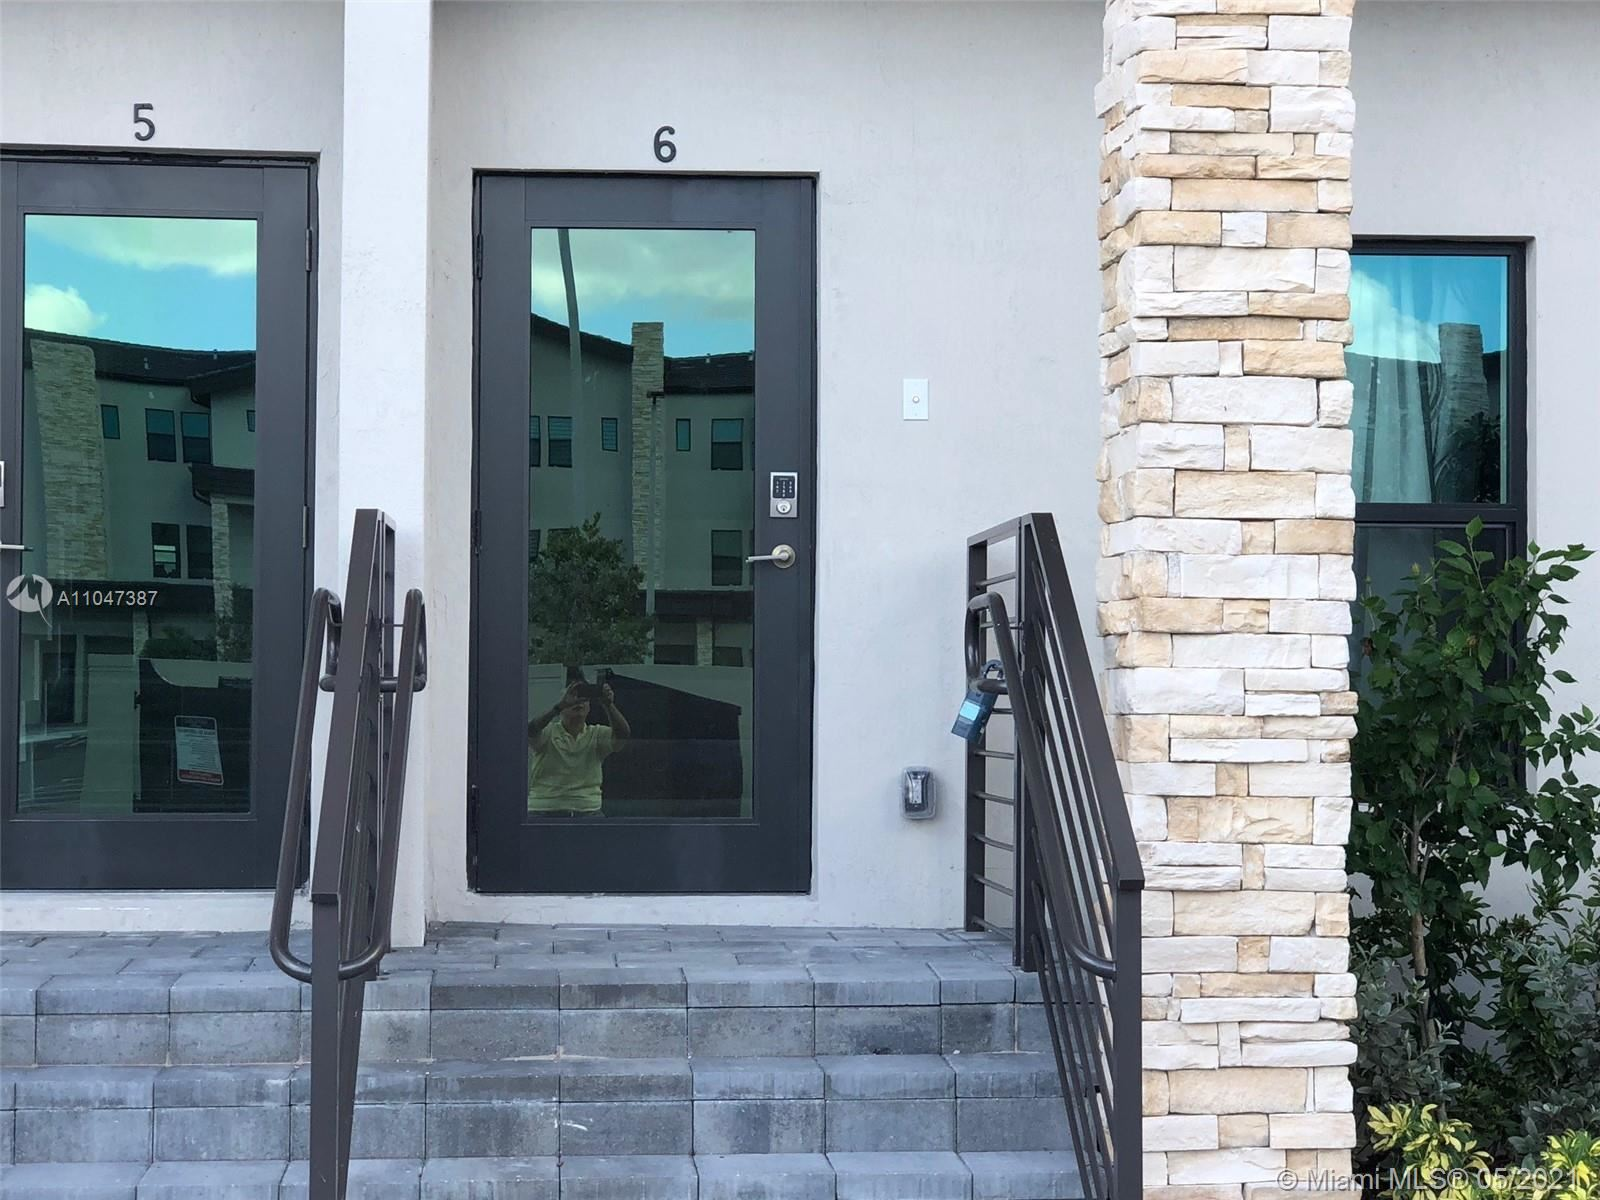 10467 NW 82nd St #6, Doral, FL 33178 - #: A11047387